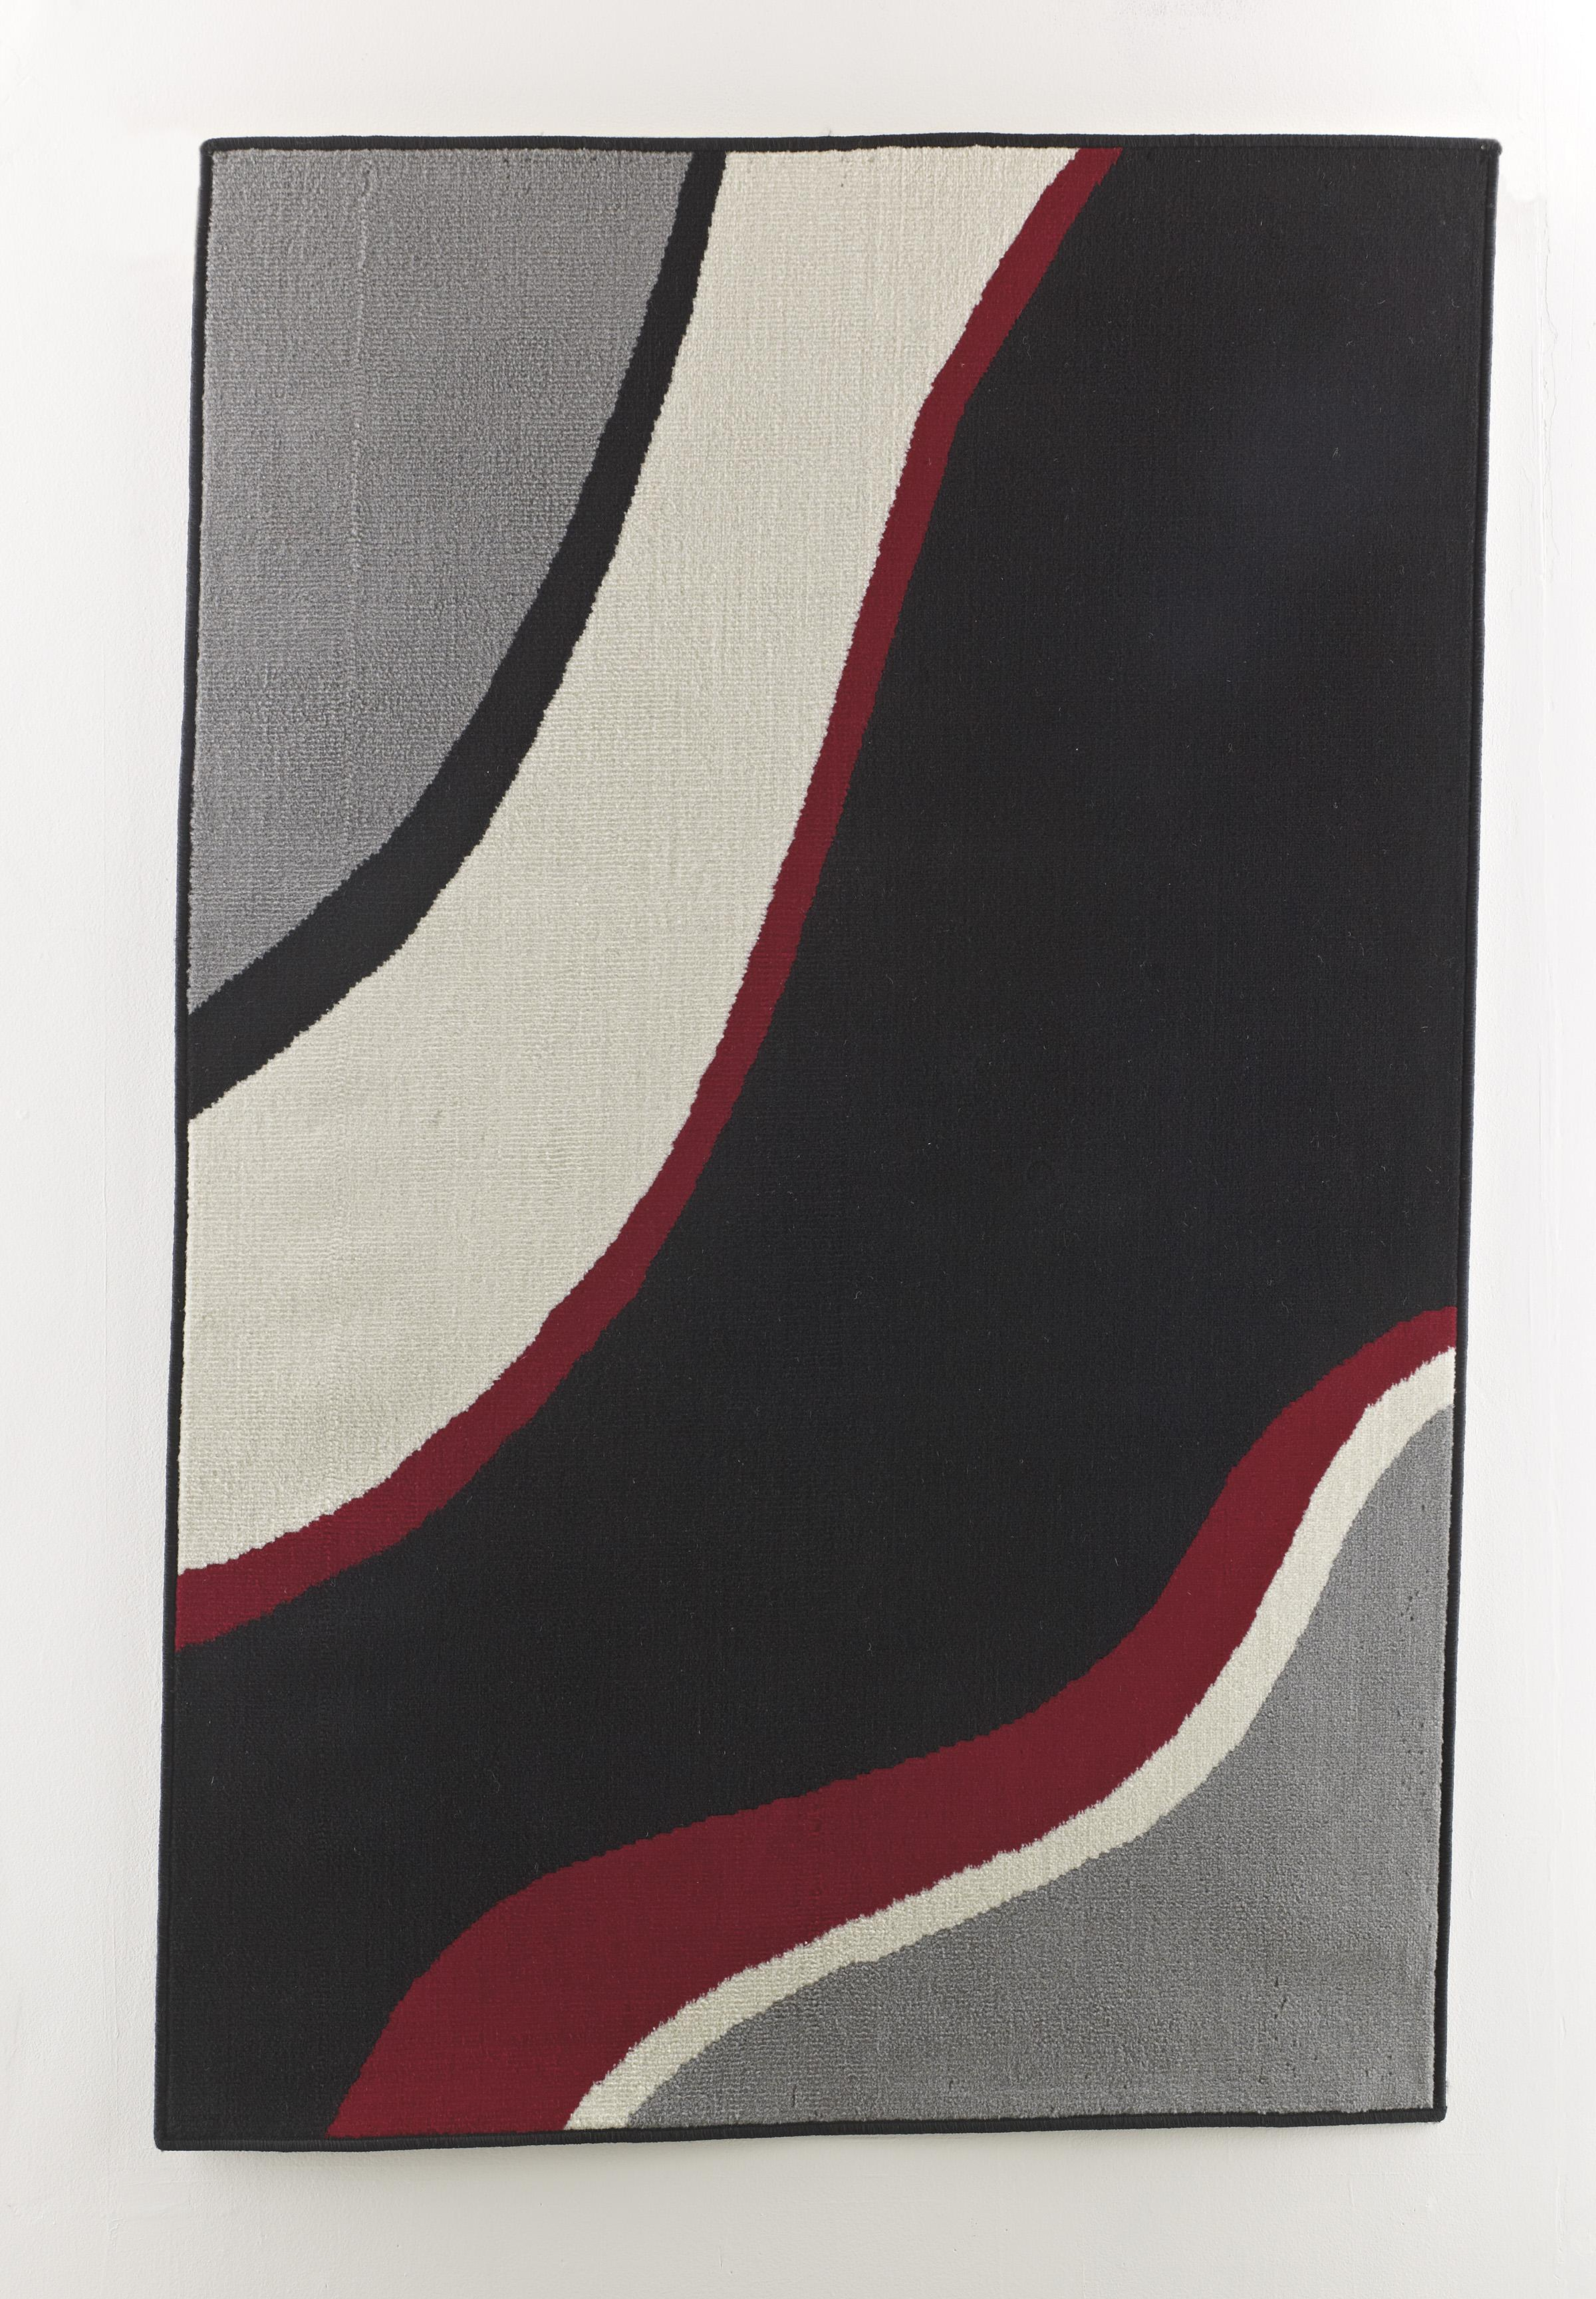 Signature Design by Ashley Contemporary Area Rugs Livy - Wave Medium Rug - Item Number: R304002